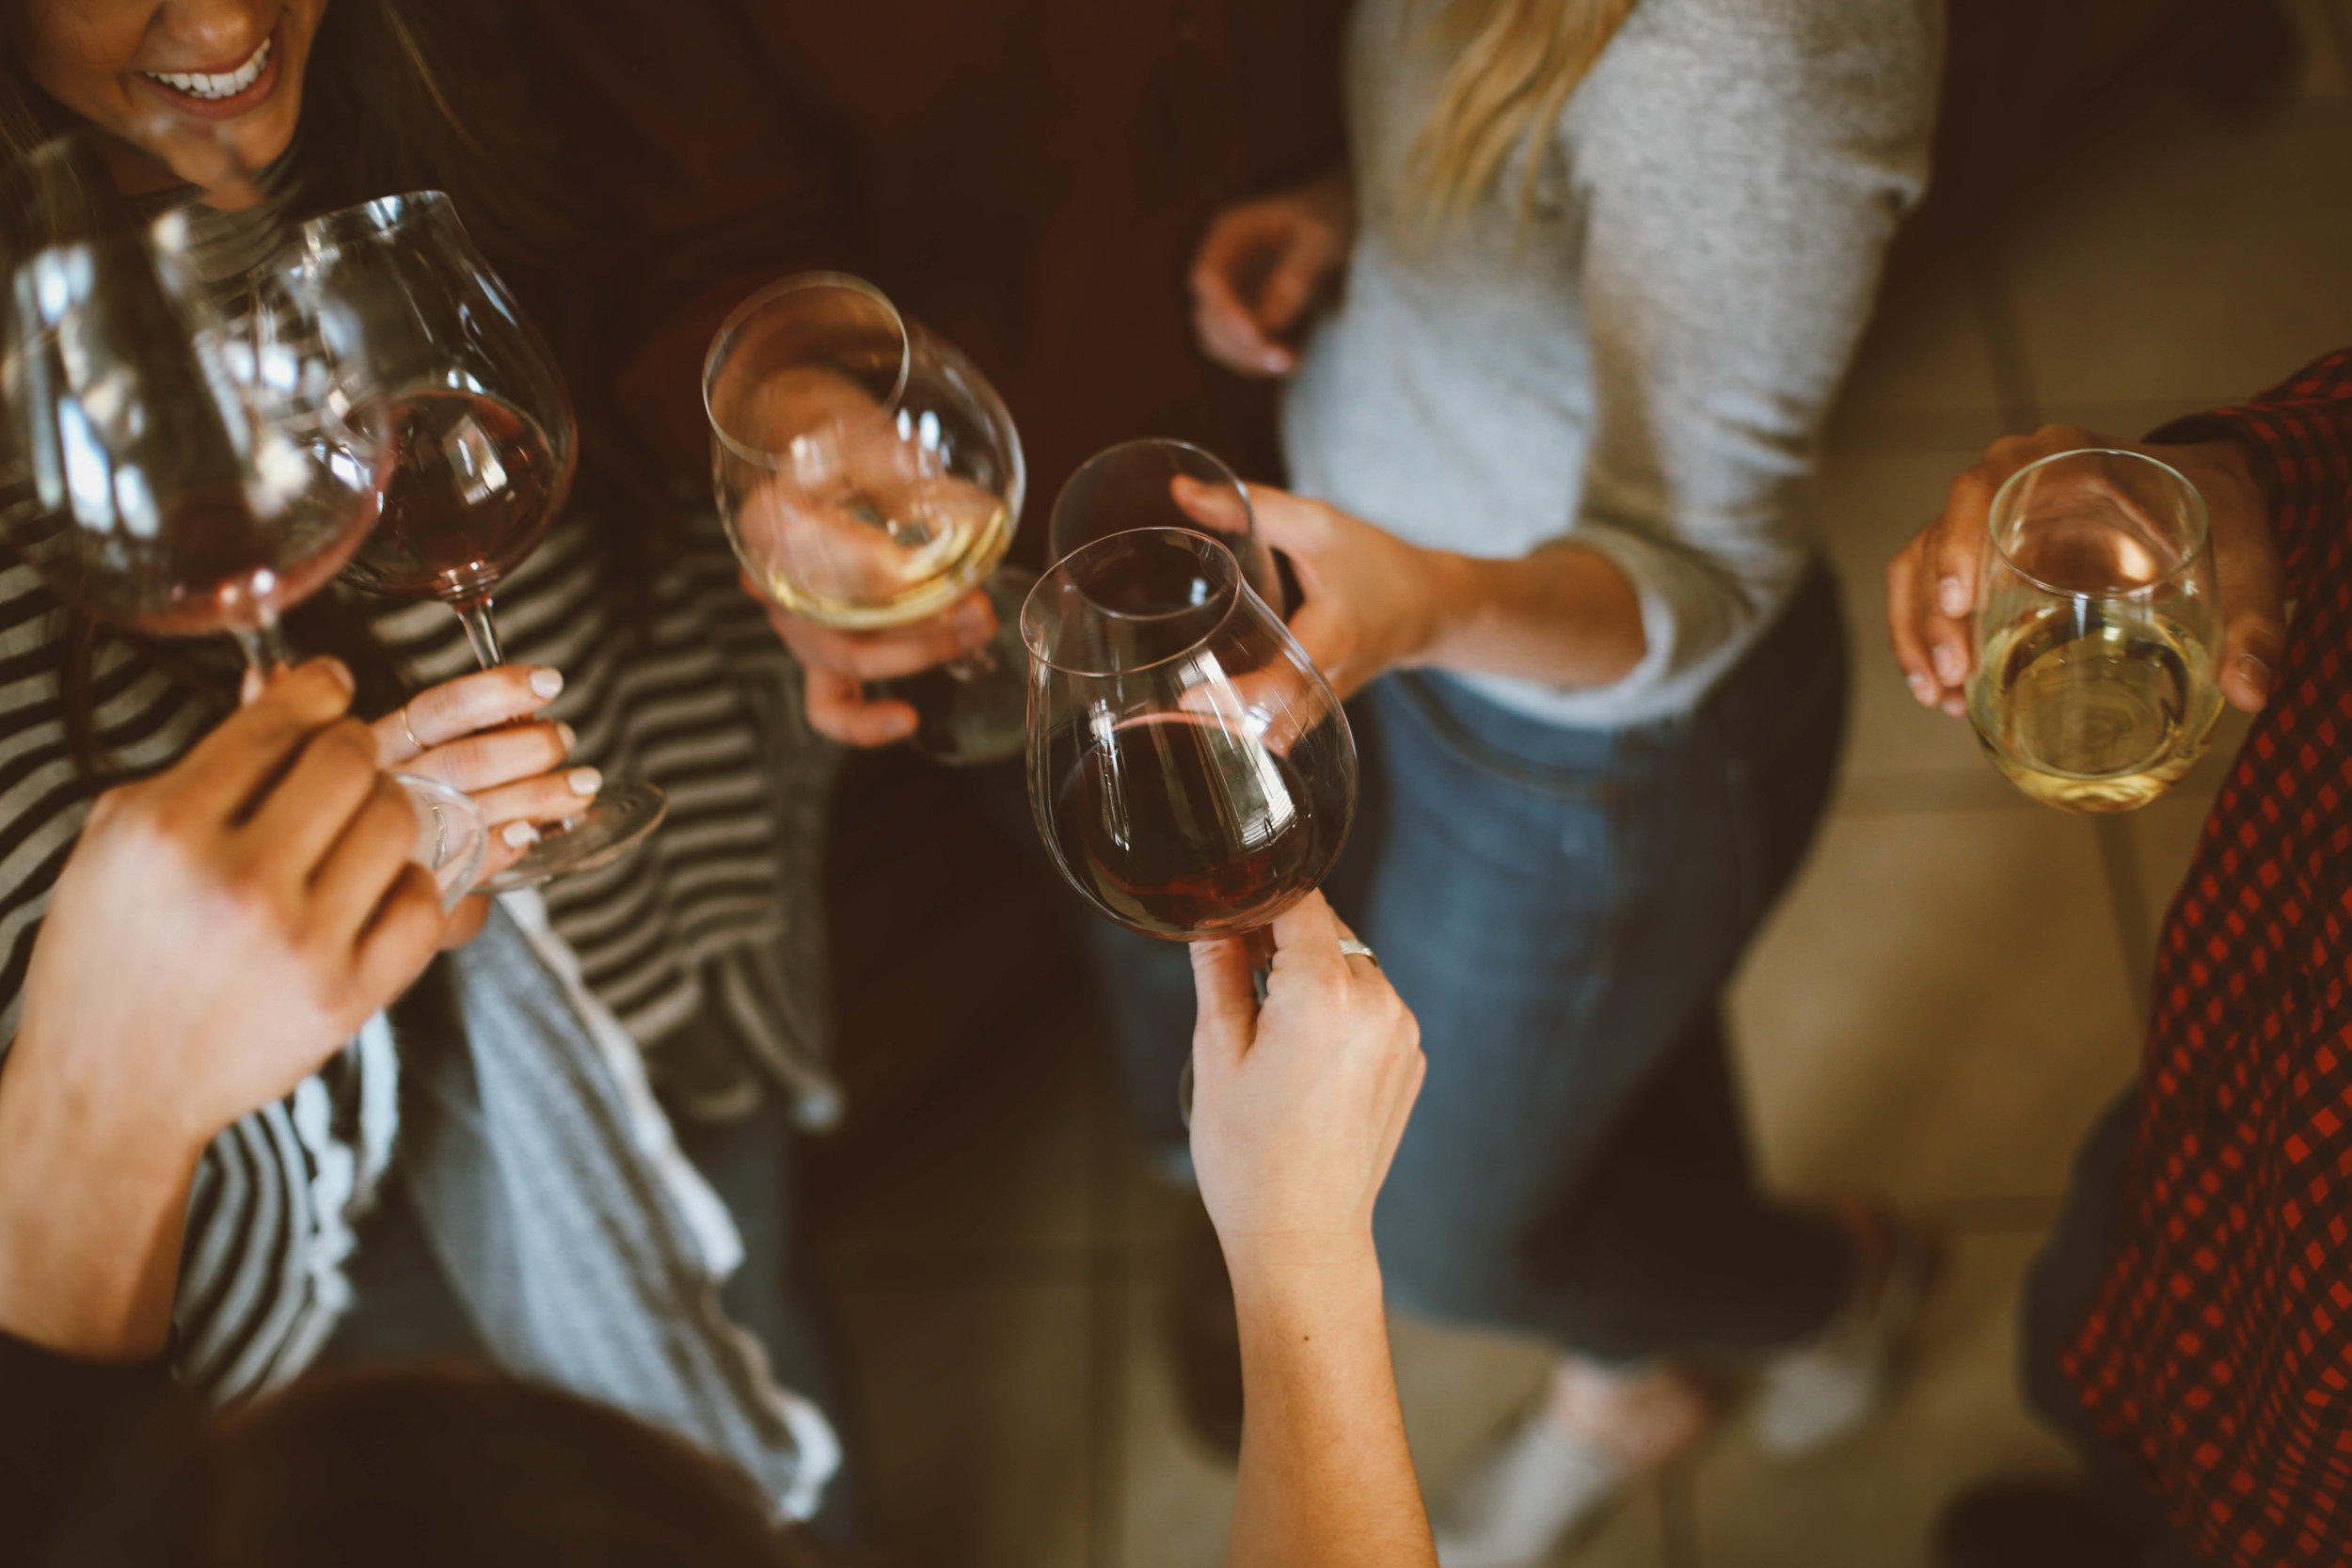 Private Parties - Party with us! We offer fun creative activities for any type of private party, birthday parties for adults, and private event. From large gatherings to small and intimate parties, we can help you make your party a success.